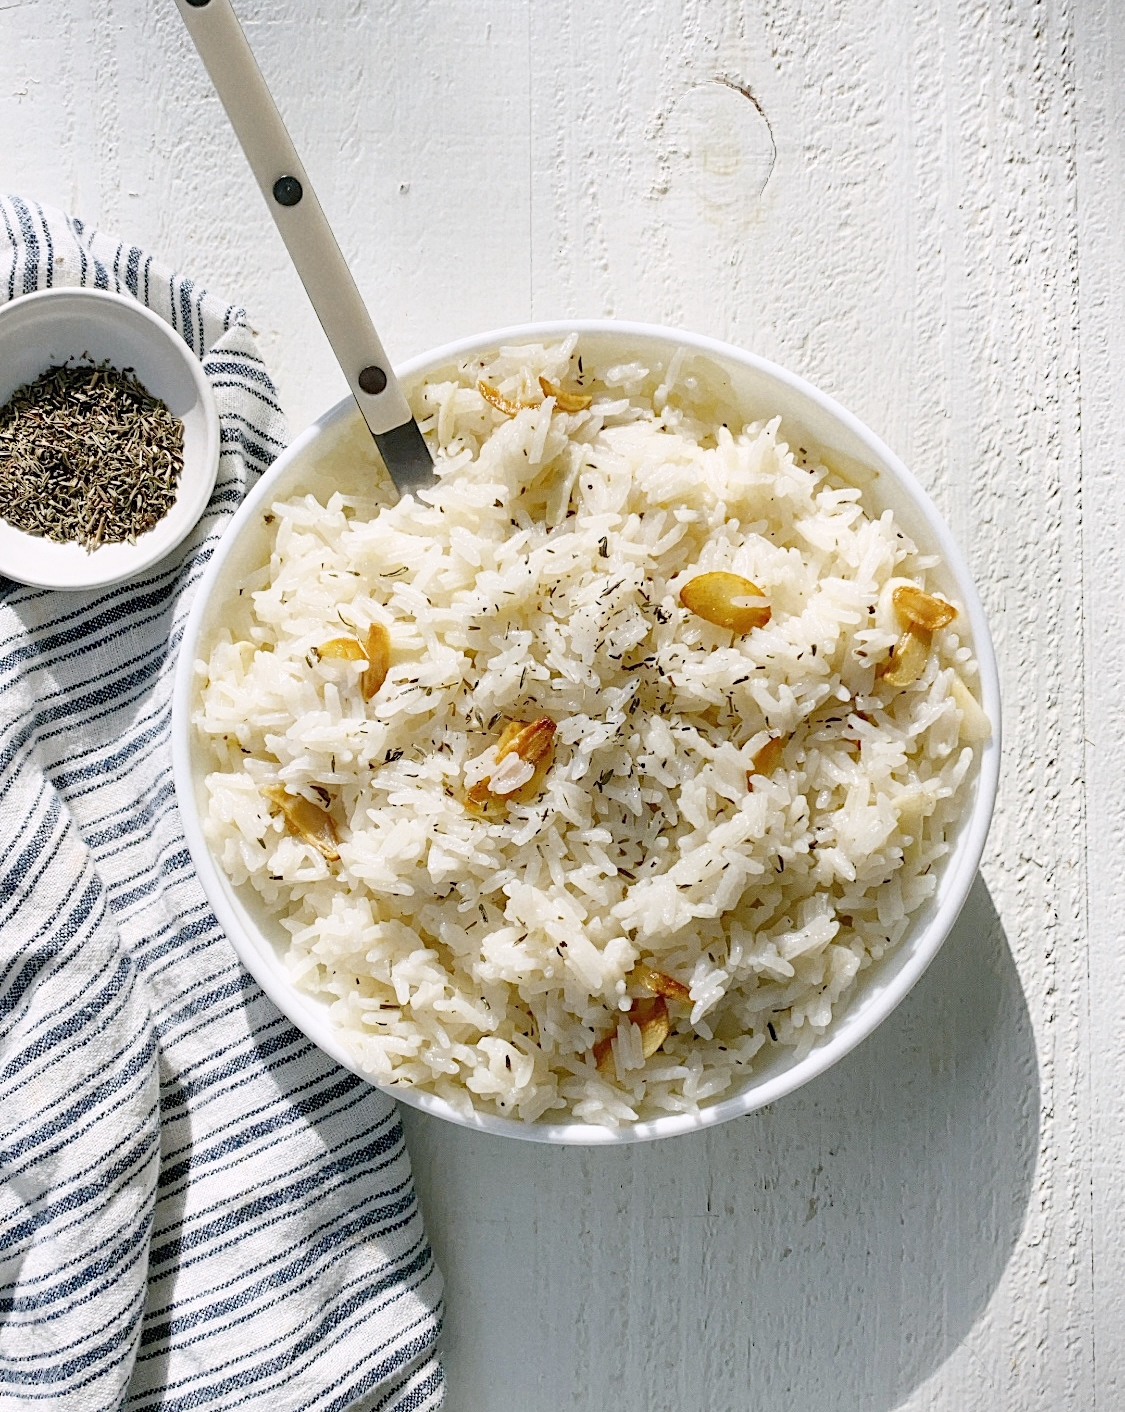 GARLIC BUTTER RICE RECIPE